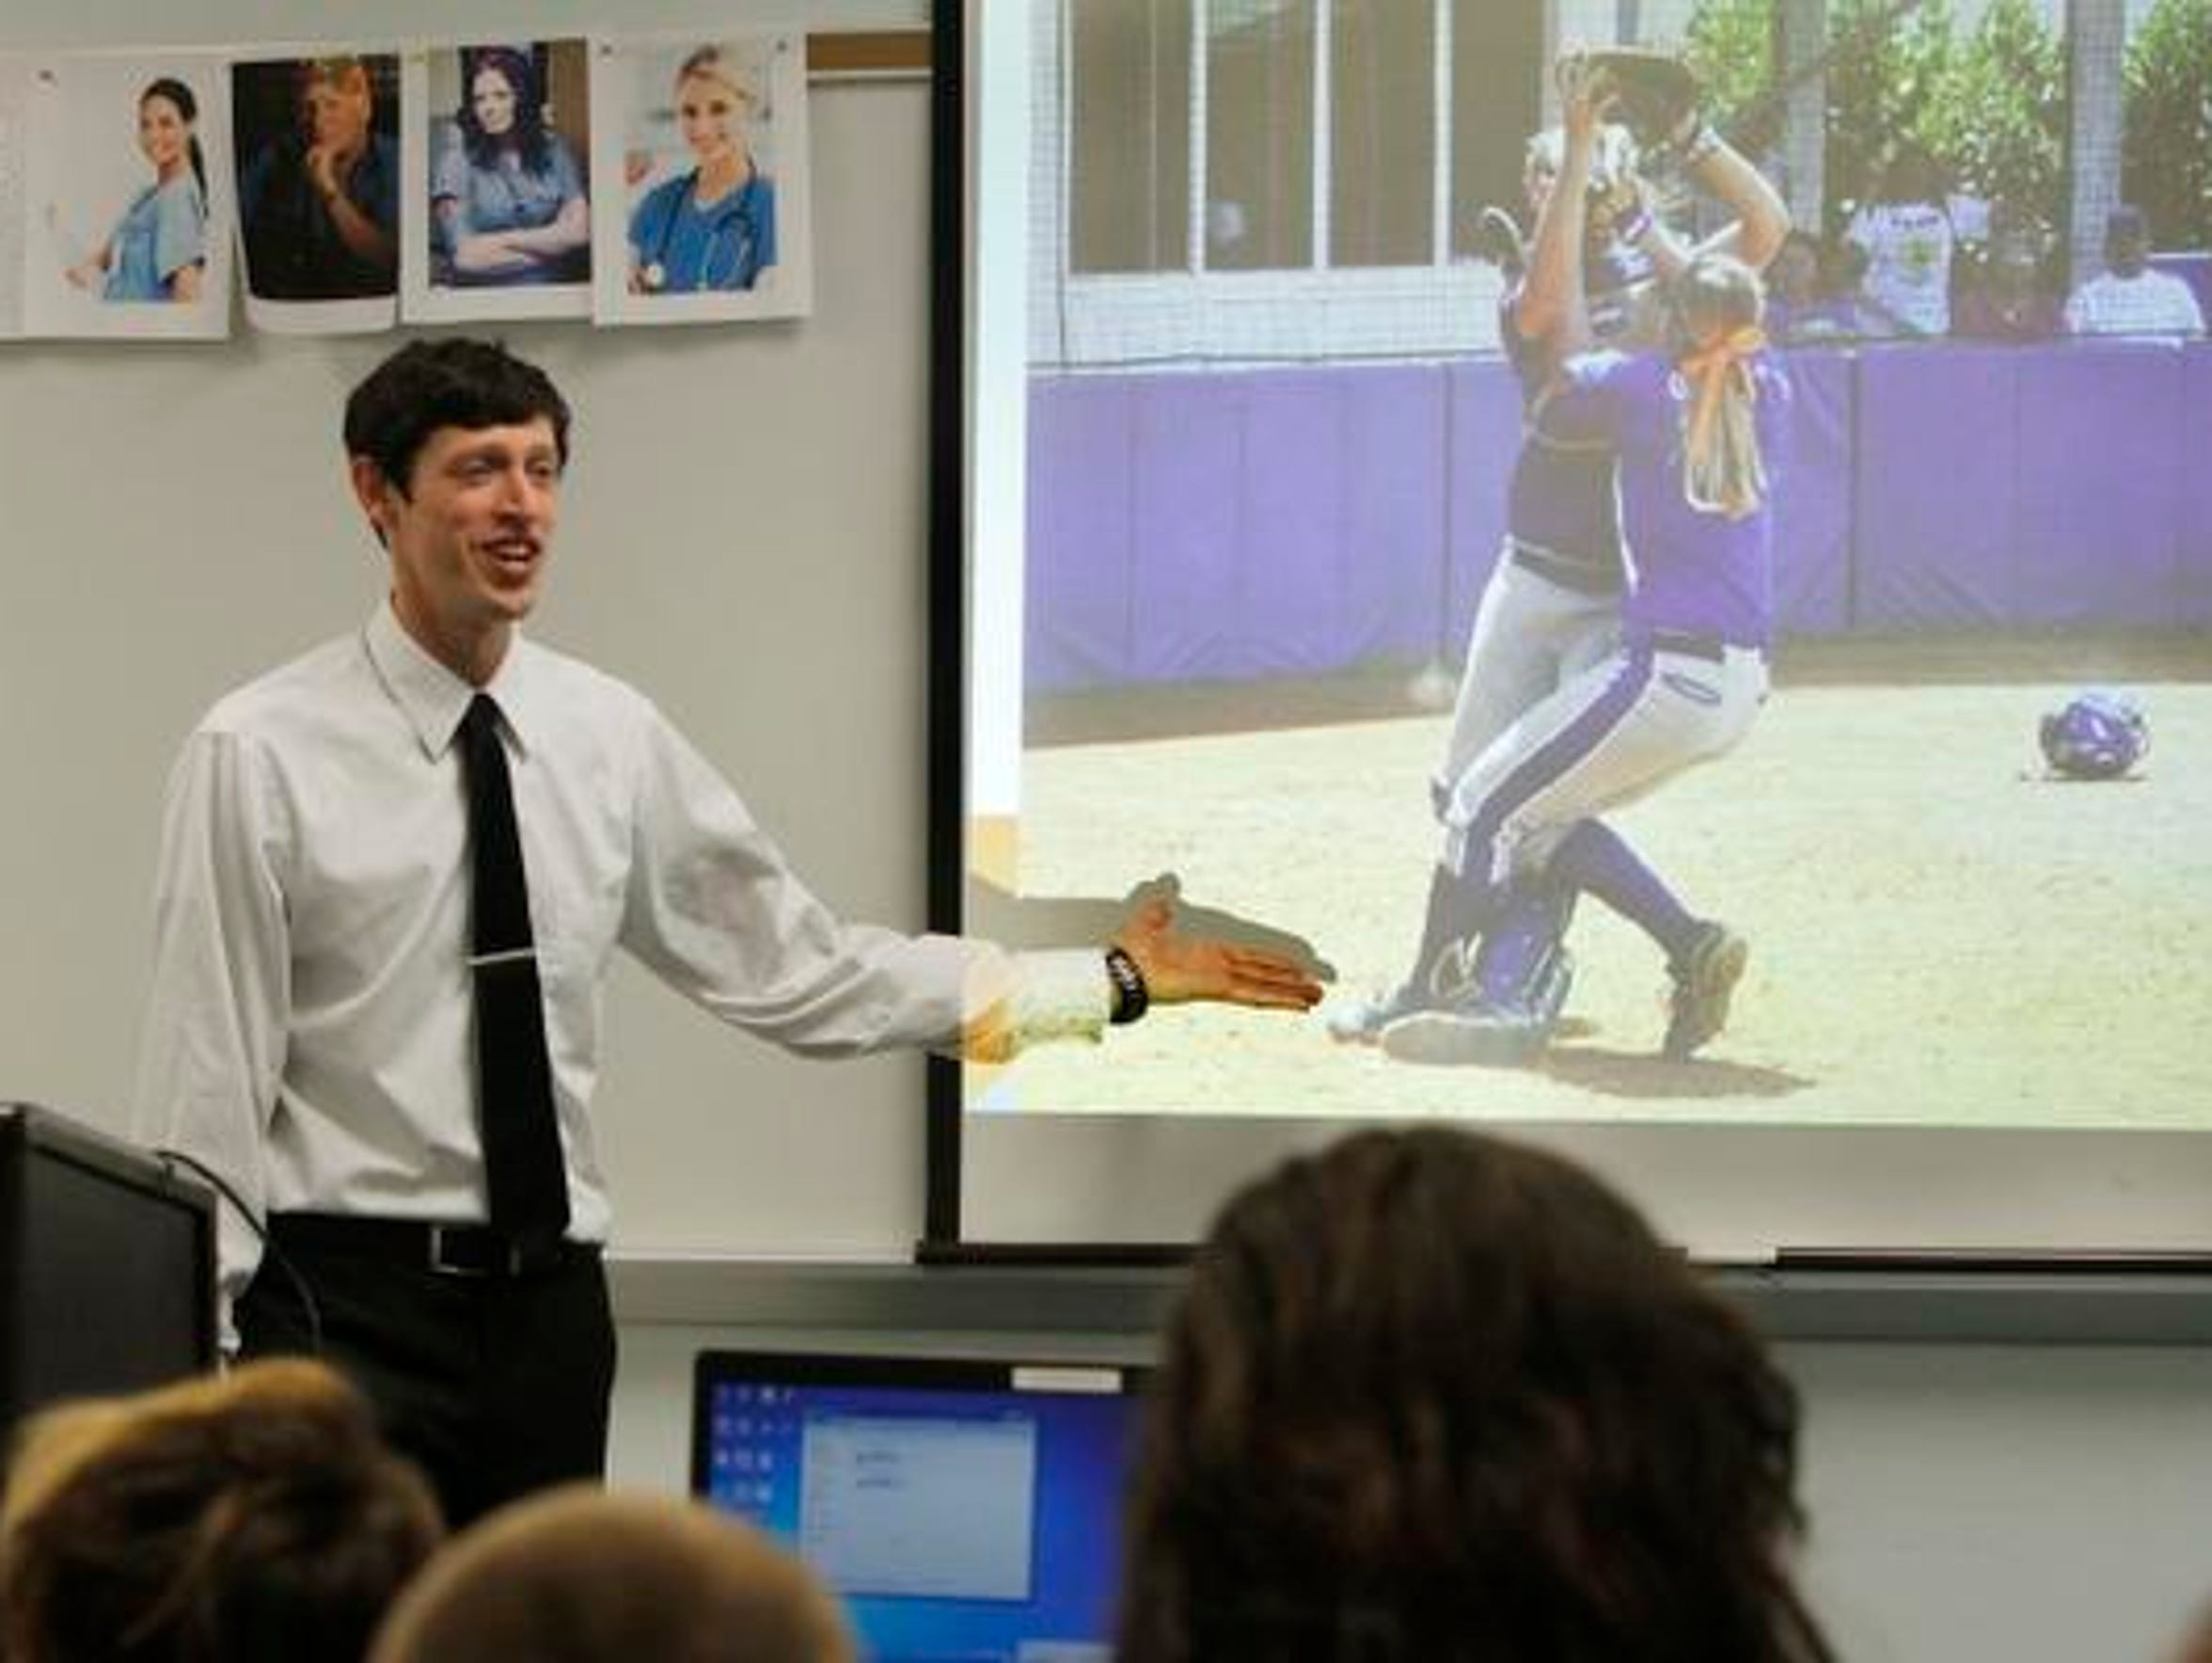 Athletic Trainer Joe Whetstone lectures about his career